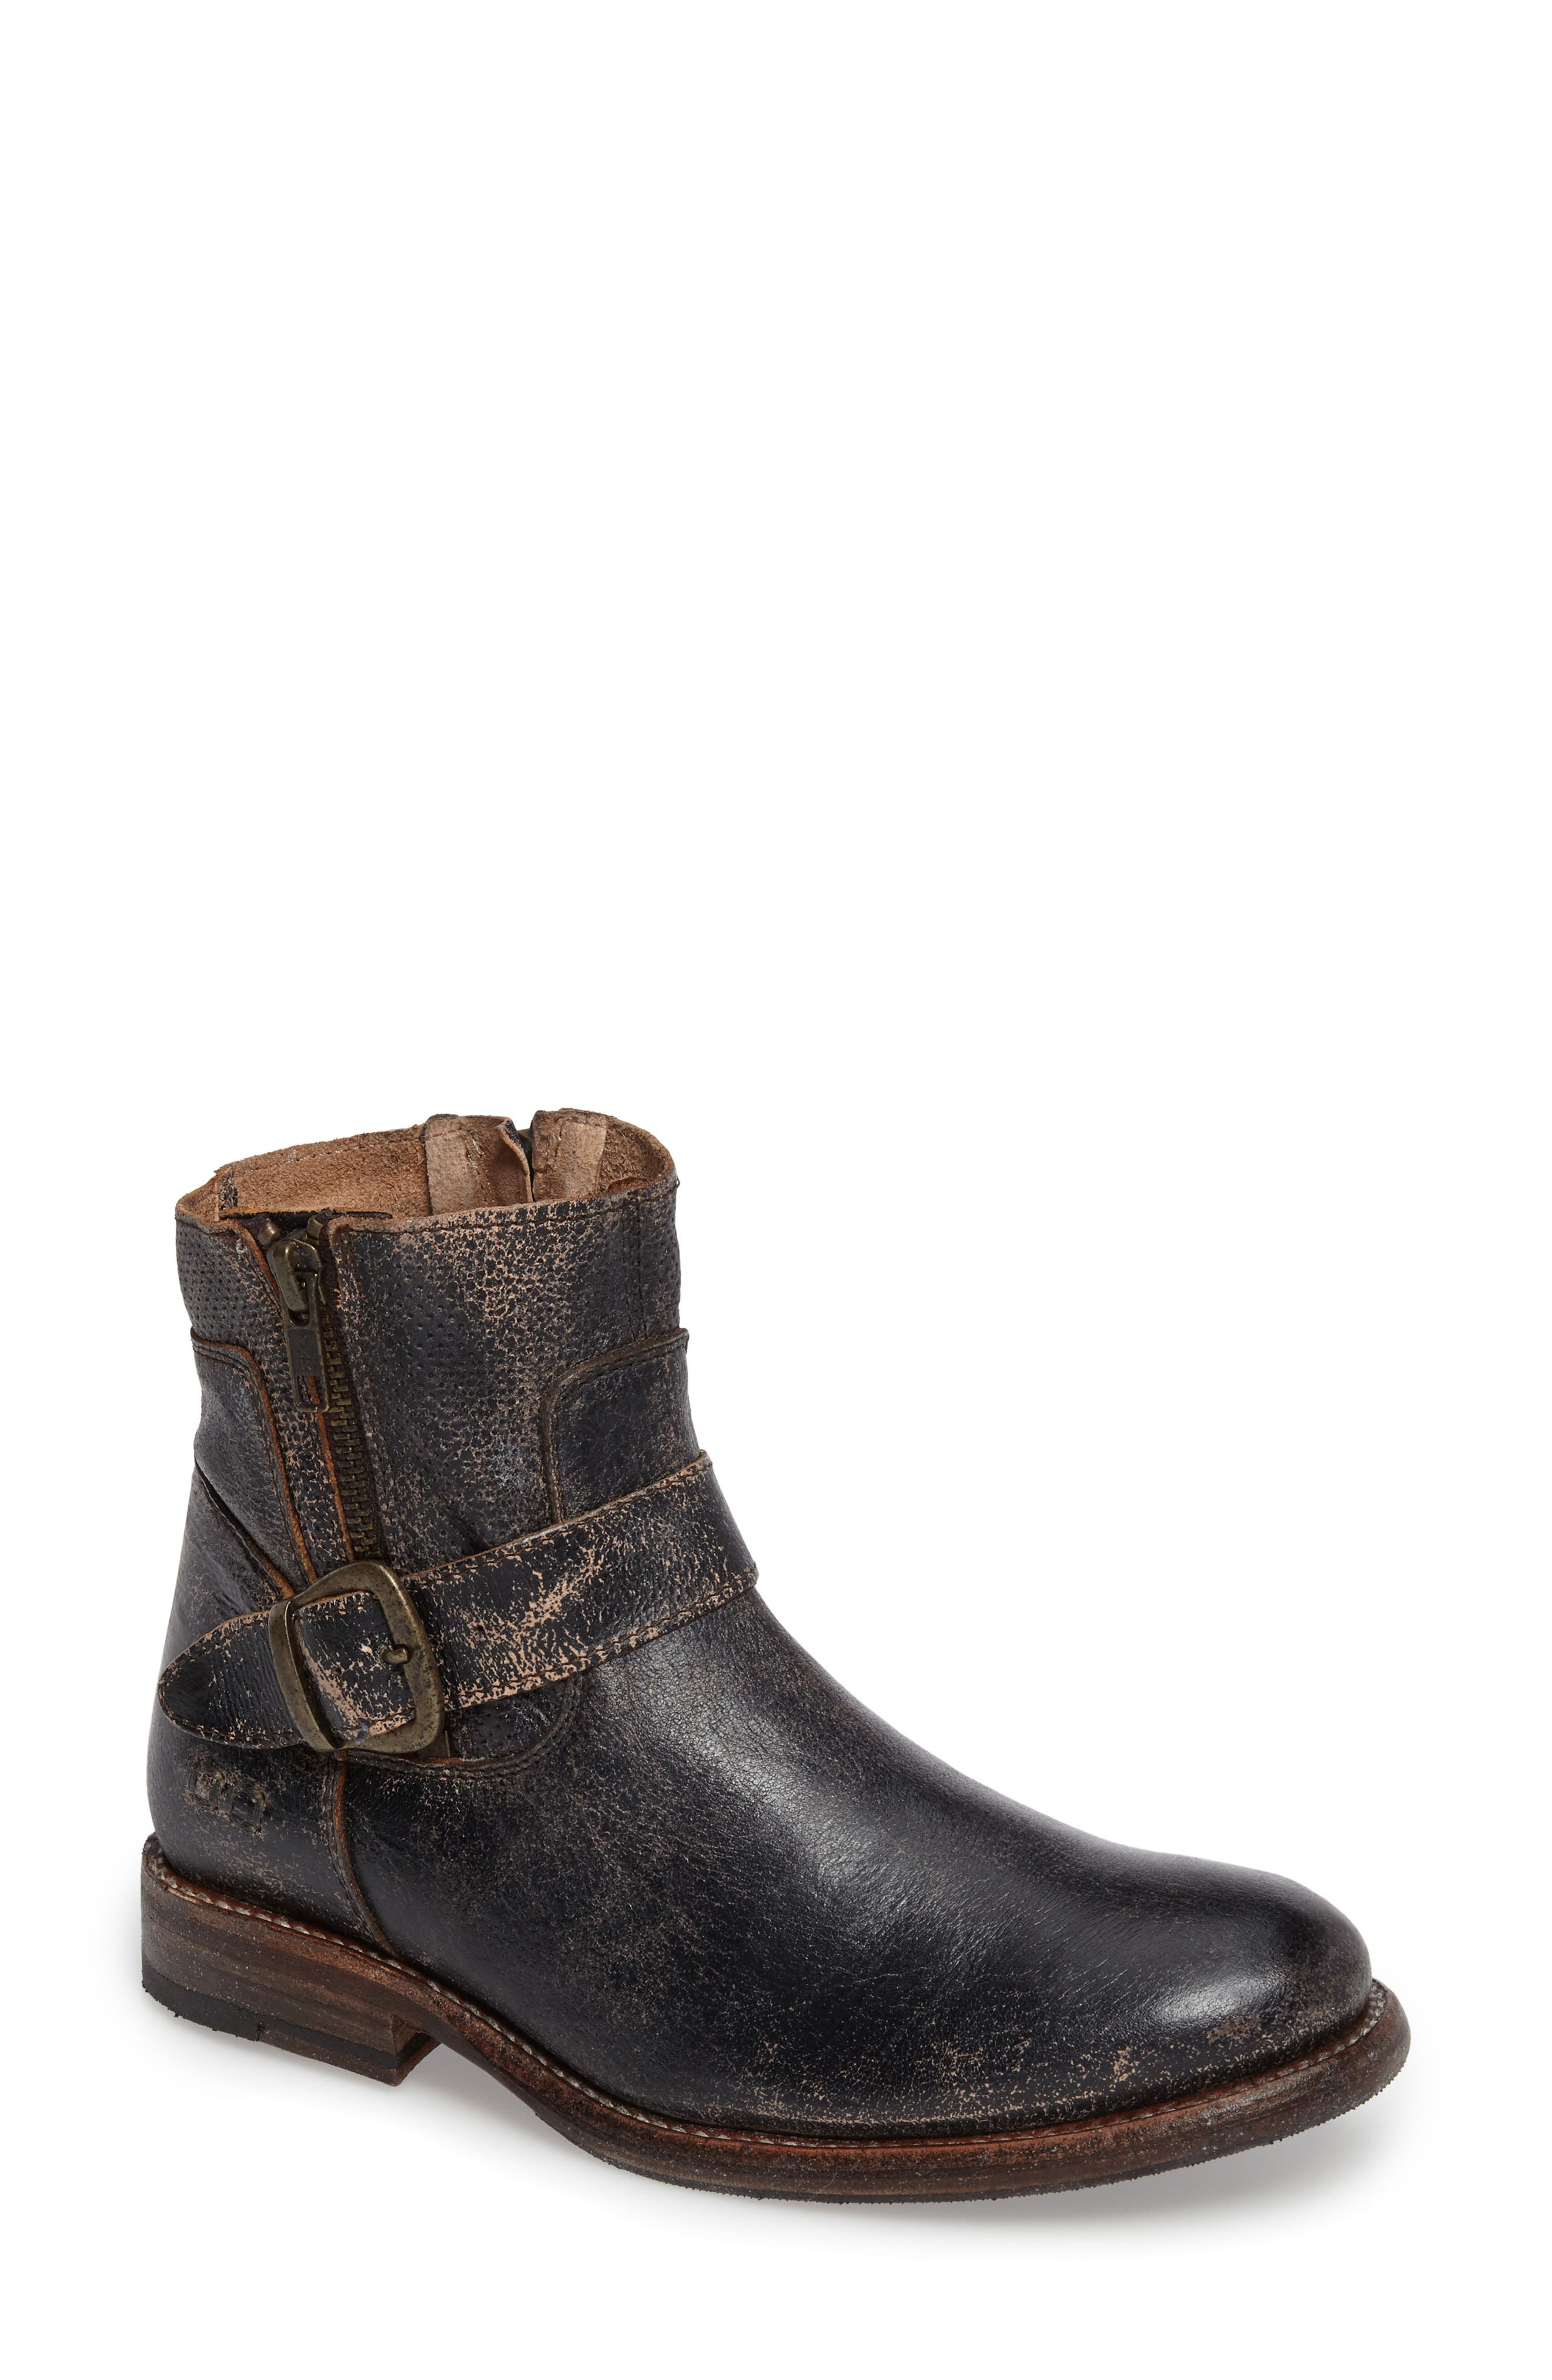 Becca Buckle Boot,                         Main,                         color, 008